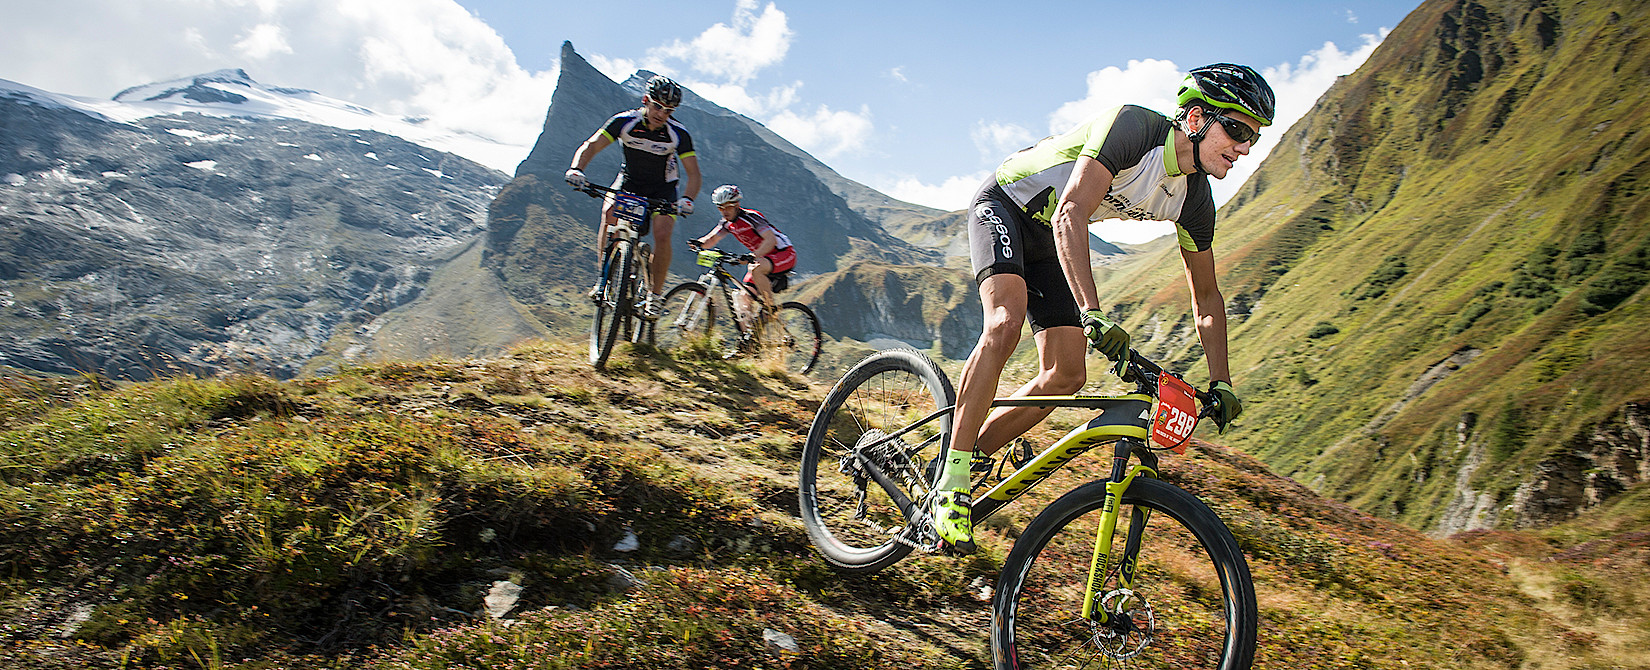 Mountain biking holiday in the Zillertal Valley